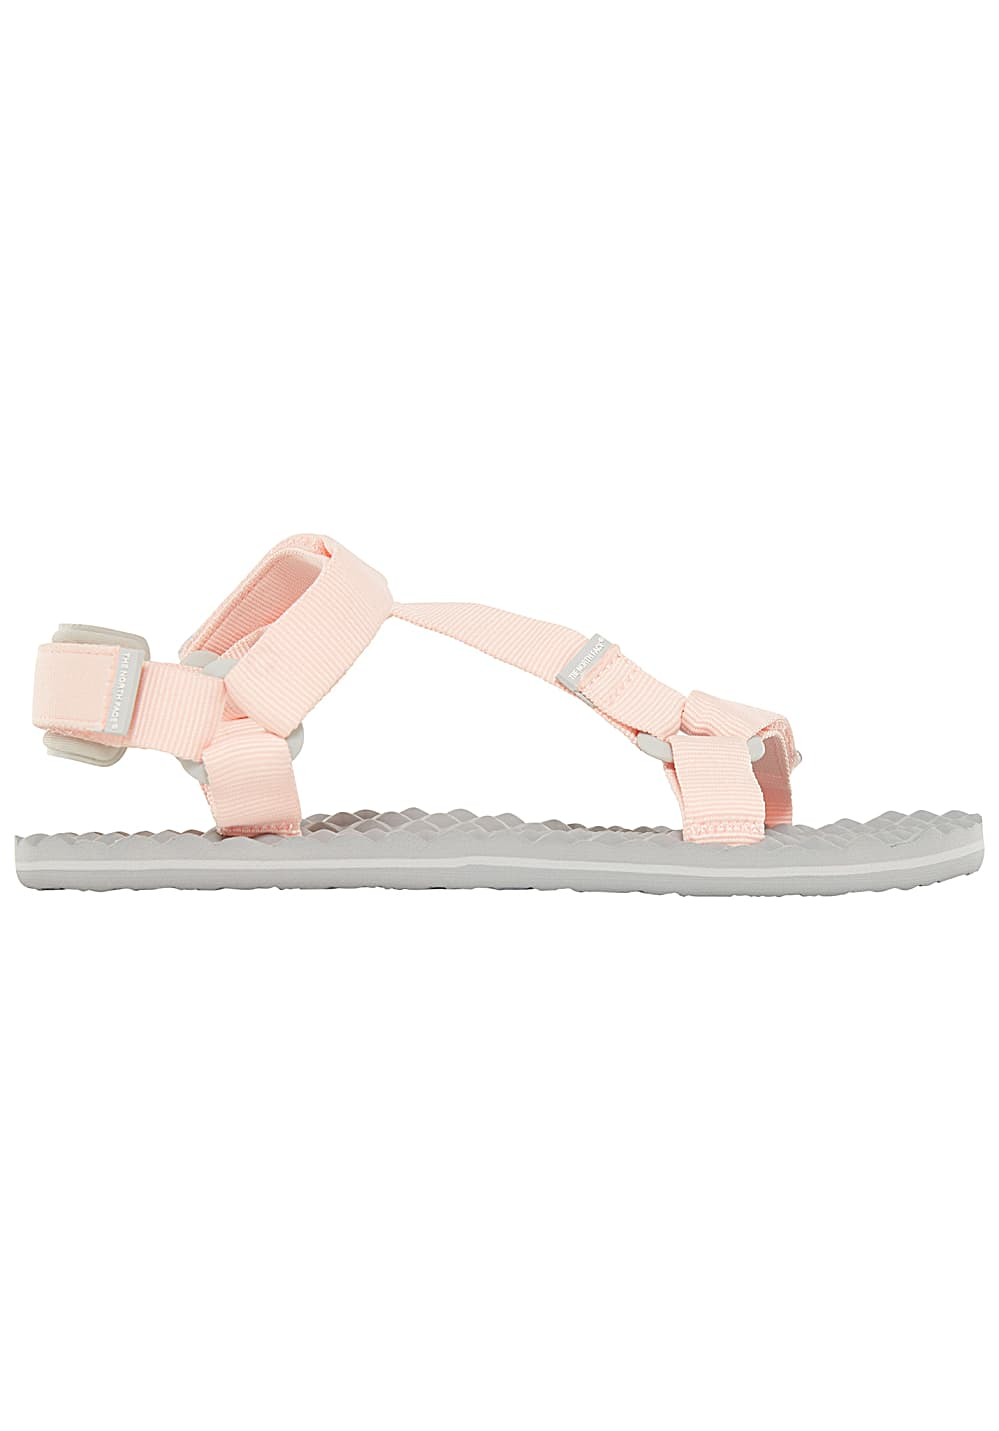 bc7cfdf59 THE NORTH FACE Base Camp Switchback - Sandals for Women - Pink ...